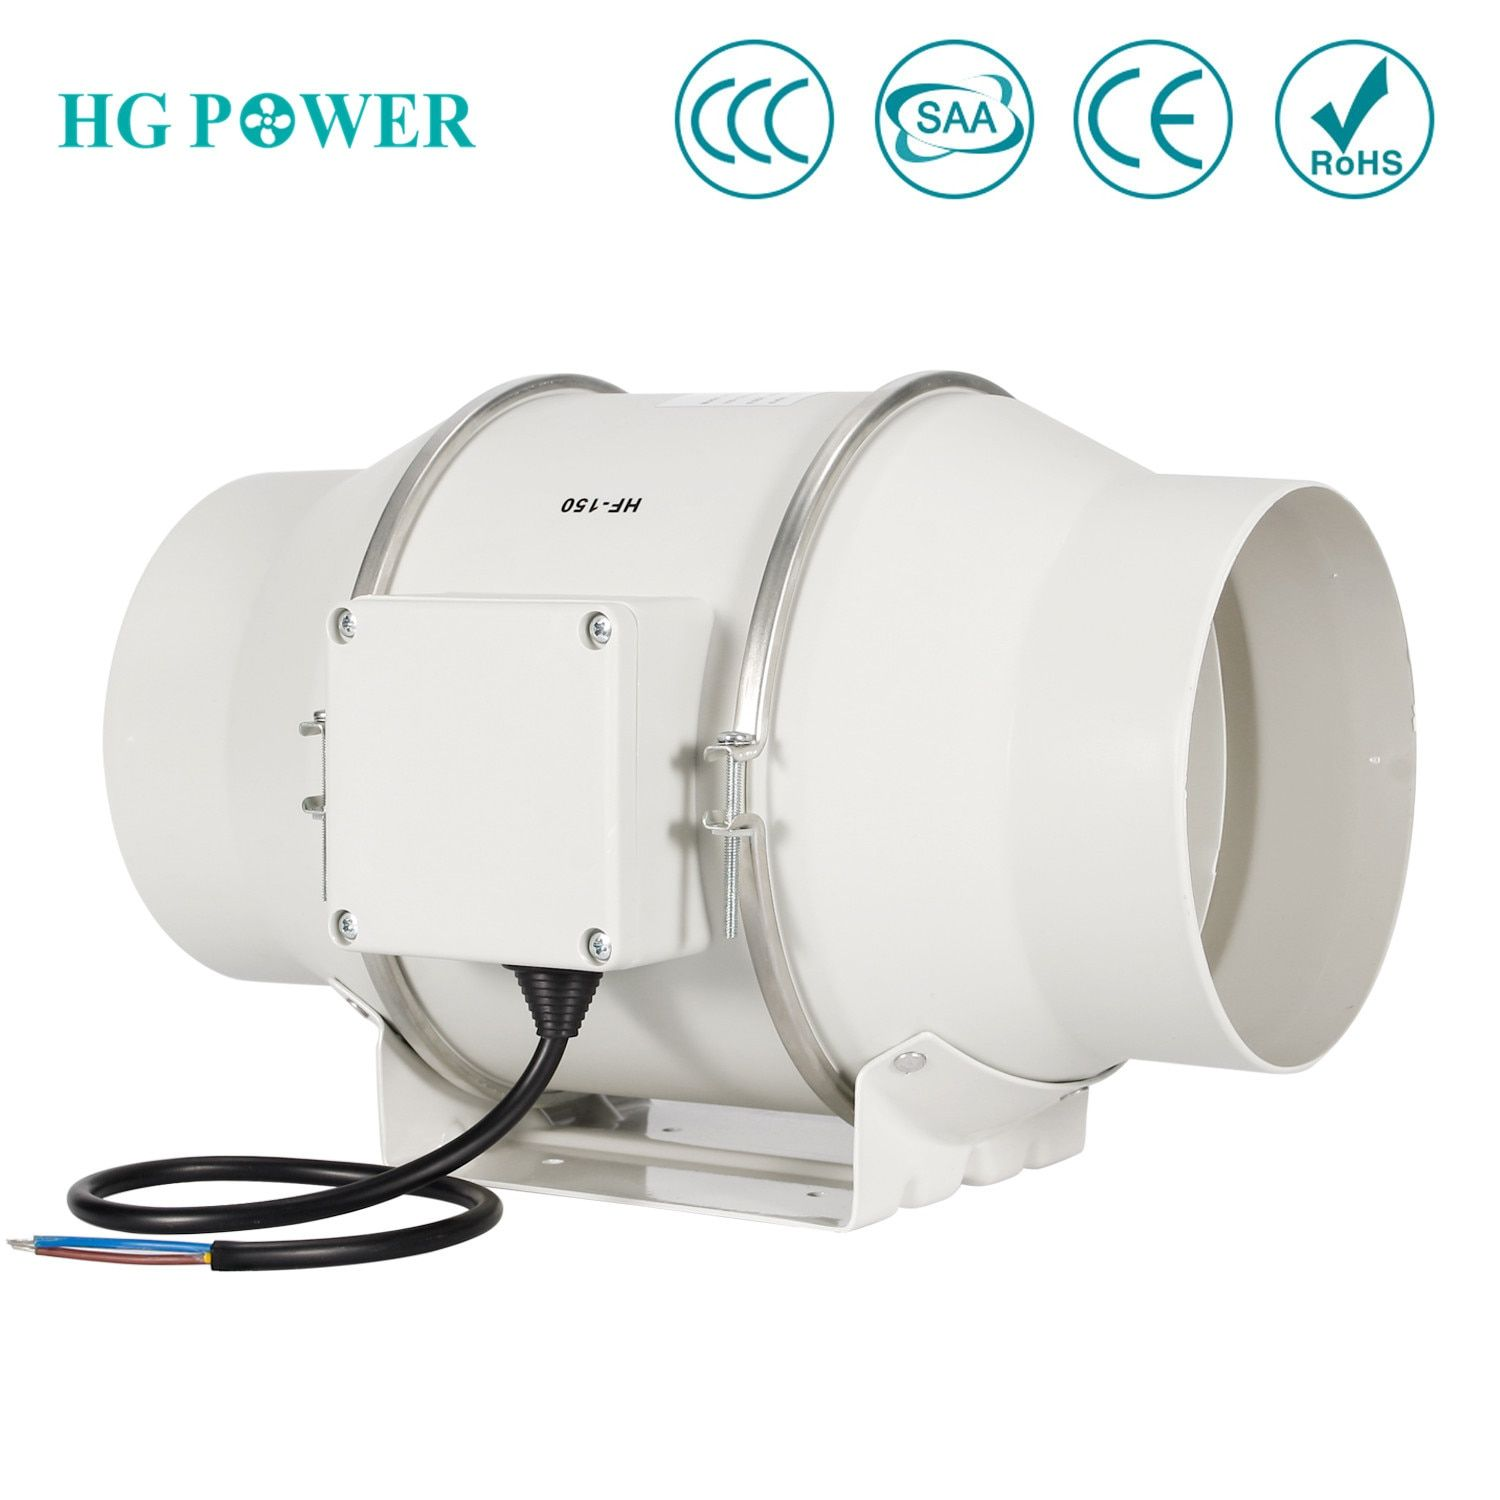 6 150mm High Efficiency Inline Duct Fan Exhaust Fan Mixed Flow Hydroponic Air Blower For Home Bathroom Gr Greenhouse Ventilation Exhaust Fan Fans For Sale